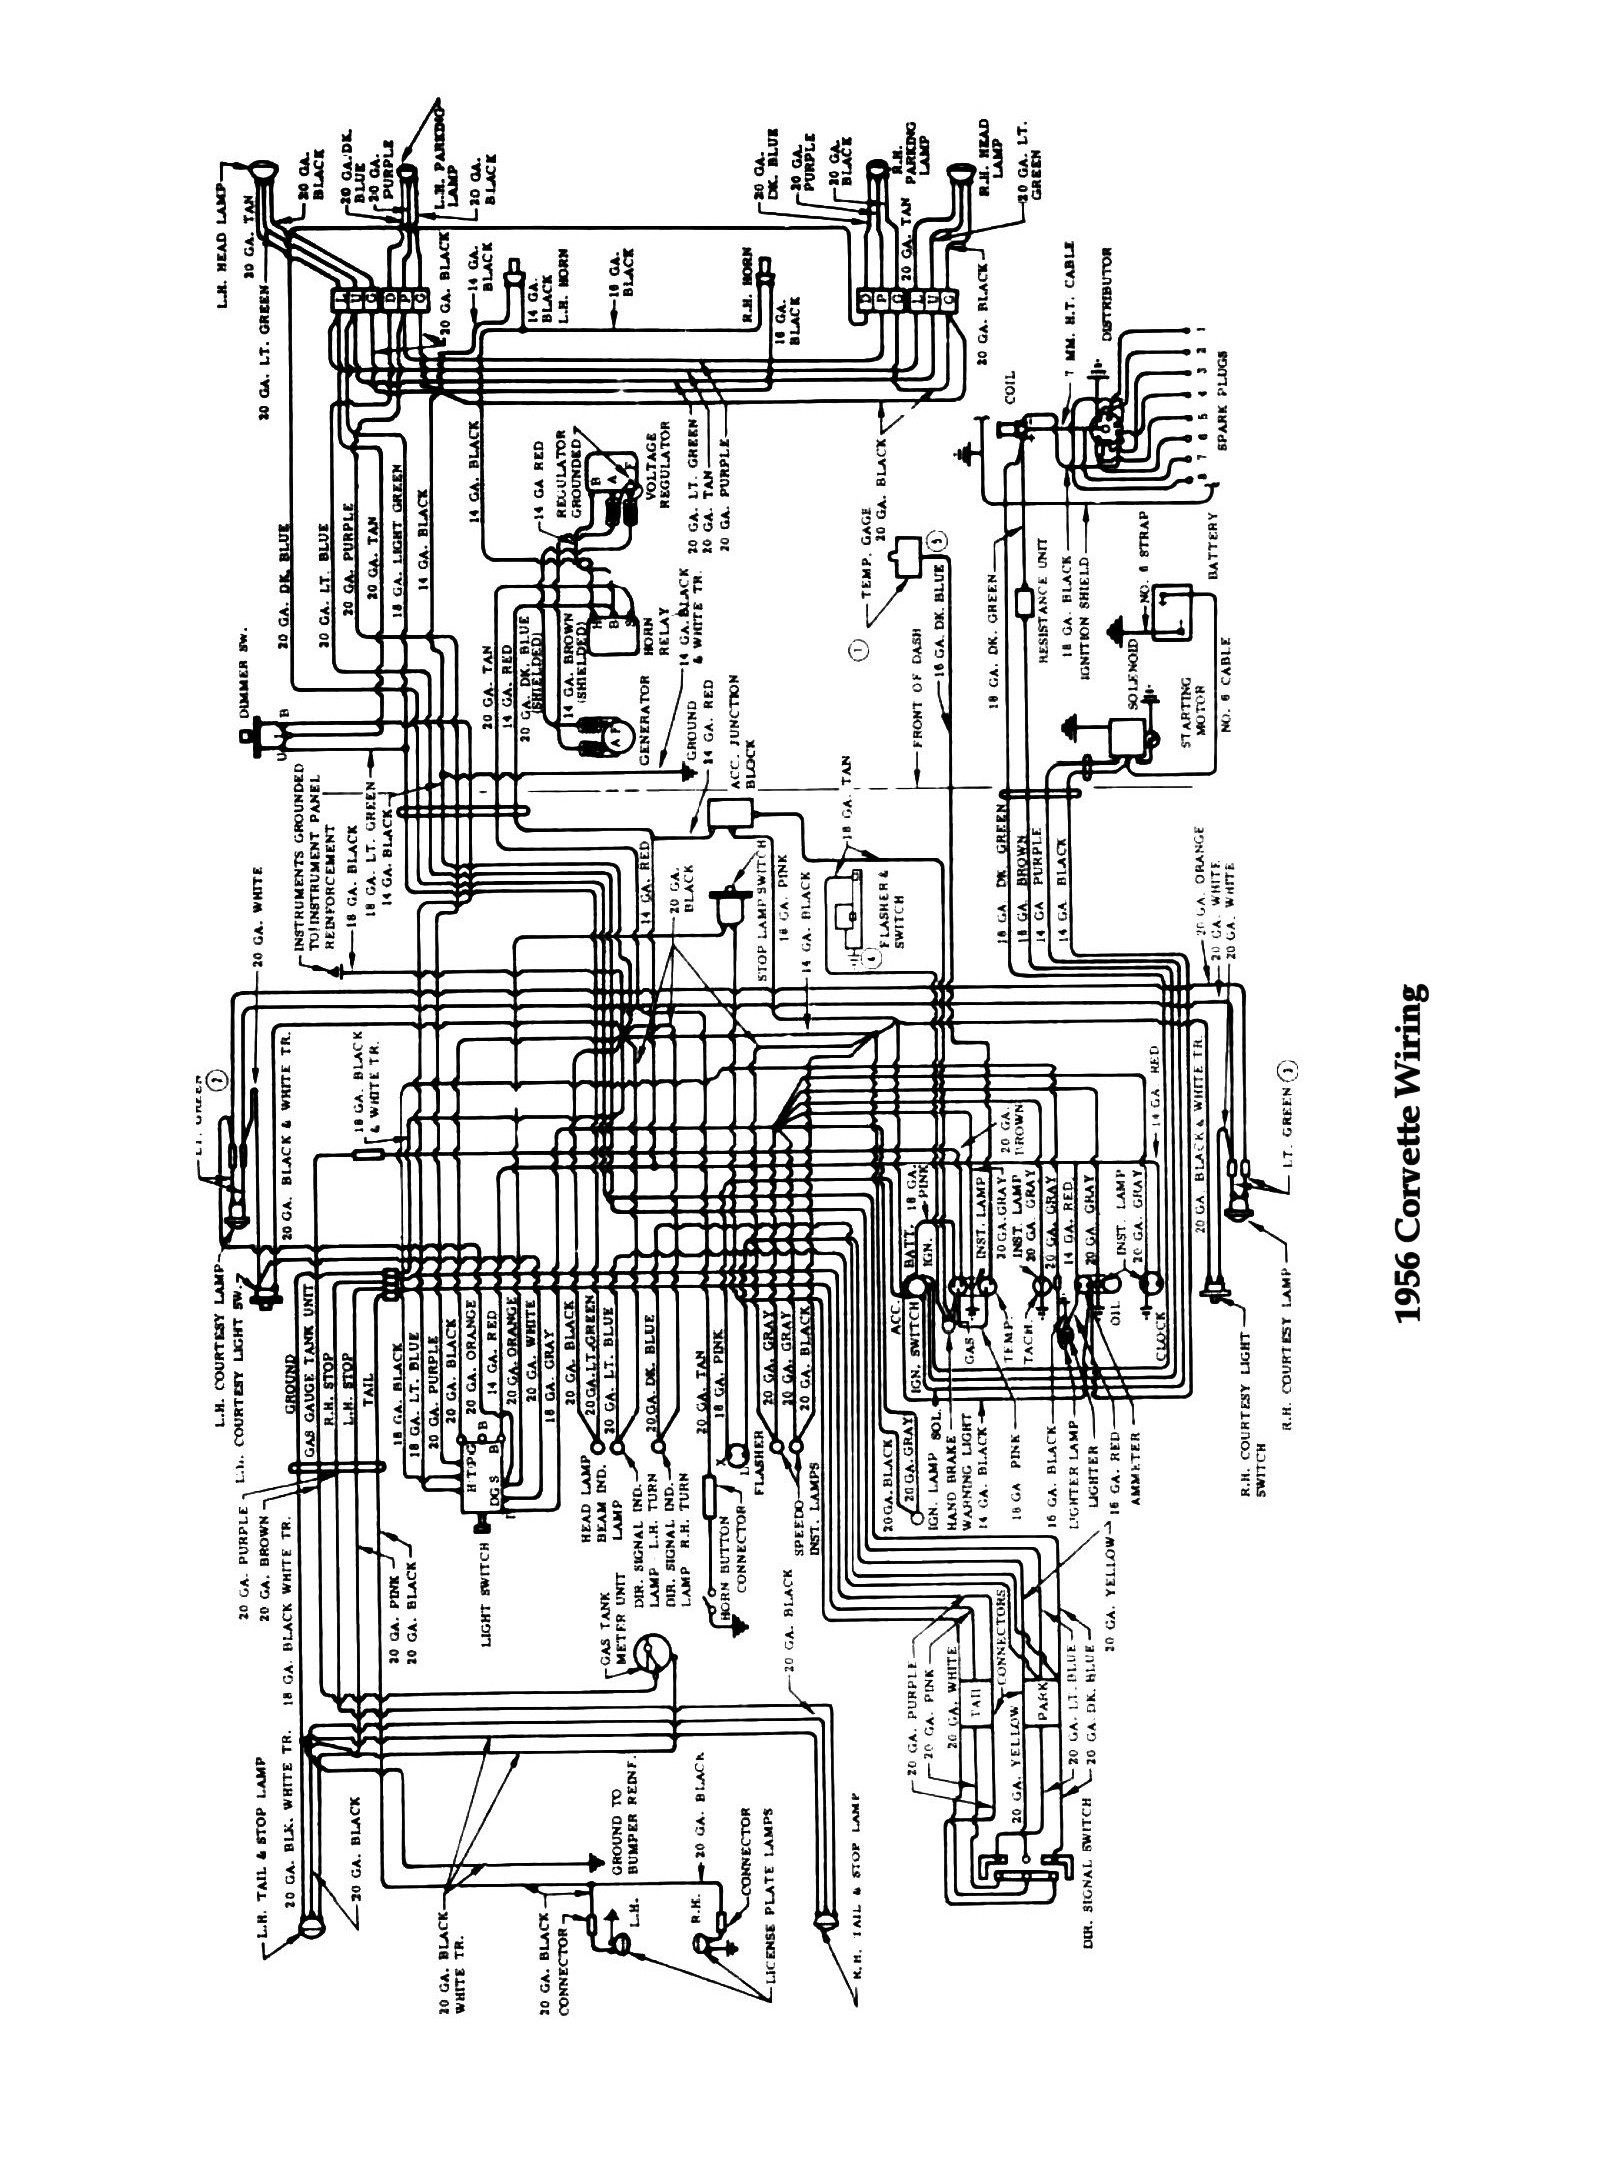 56corvette chevy wiring diagrams 73 corvette wiring diagram pdf at honlapkeszites.co